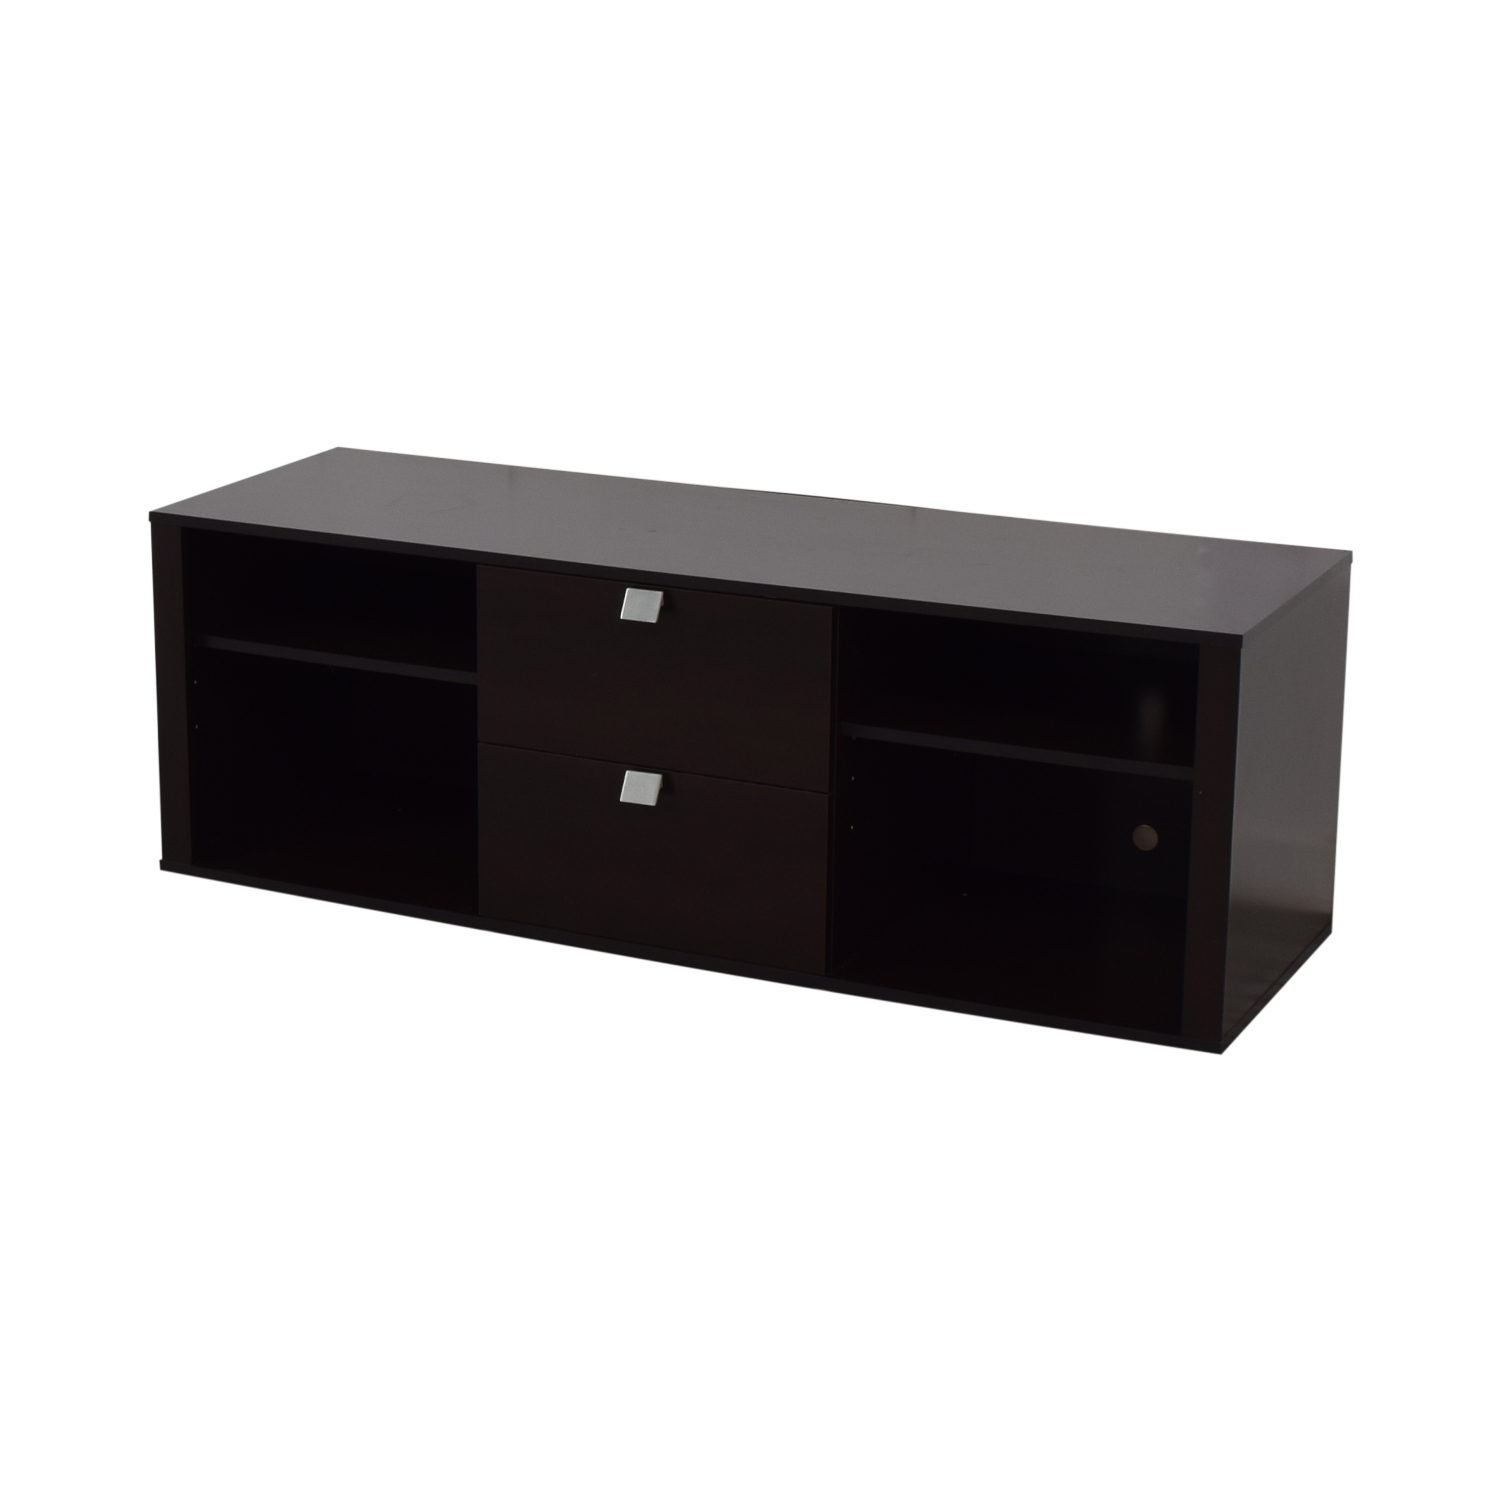 buy South Shore Two Drawer Media Unit South Shore Storage